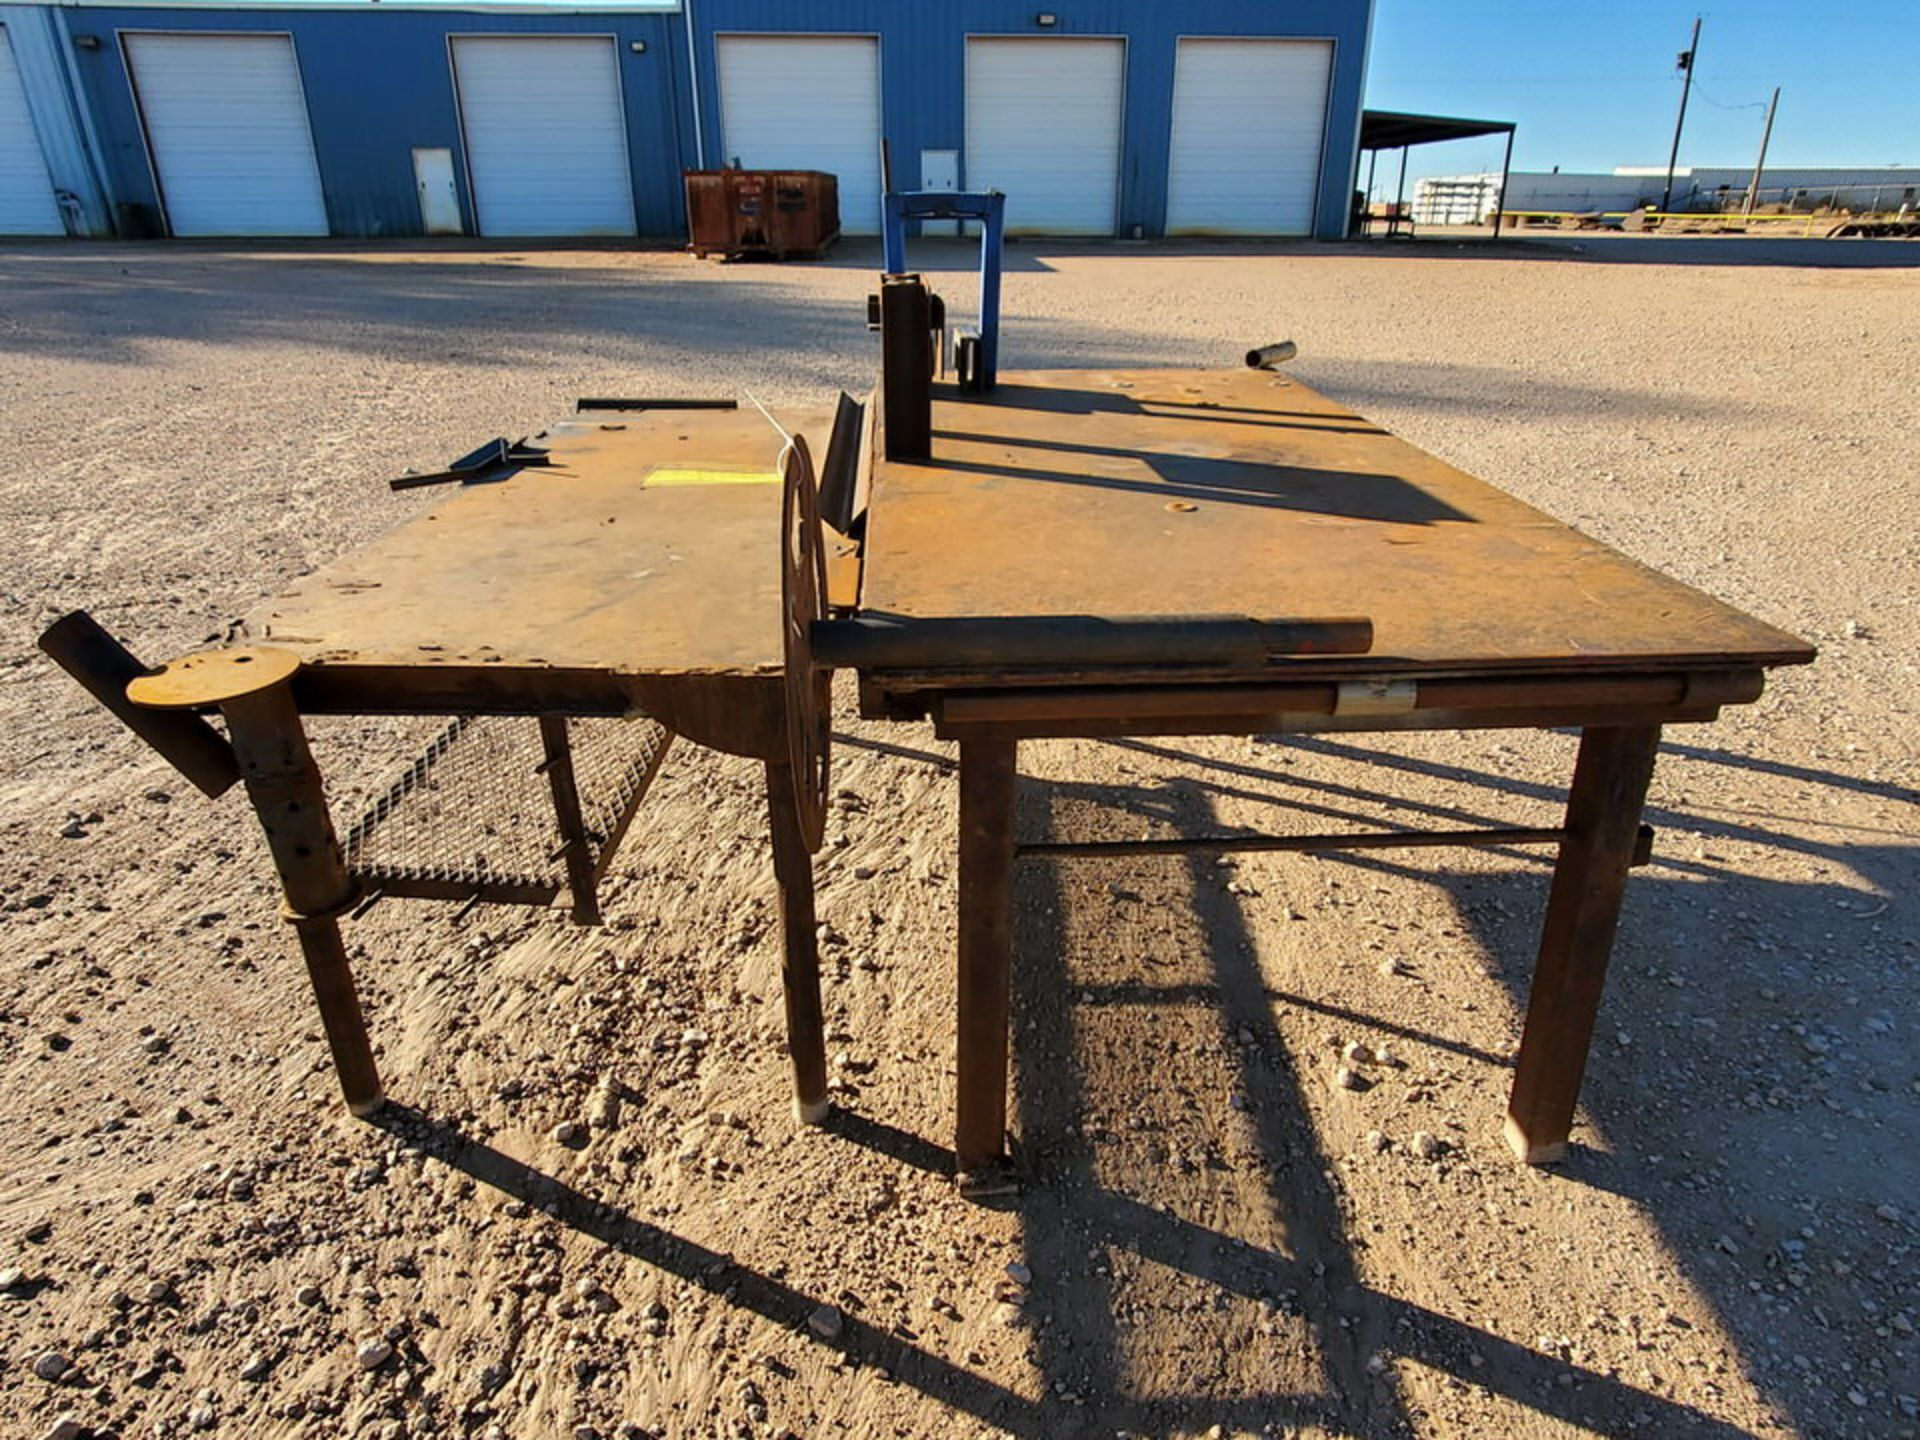 "(2) Stl Welding Tables (1) 48-1/2"" x 96"" x 37""H; (1) 37"" x 78"" x 34-1/2""H - Image 4 of 4"